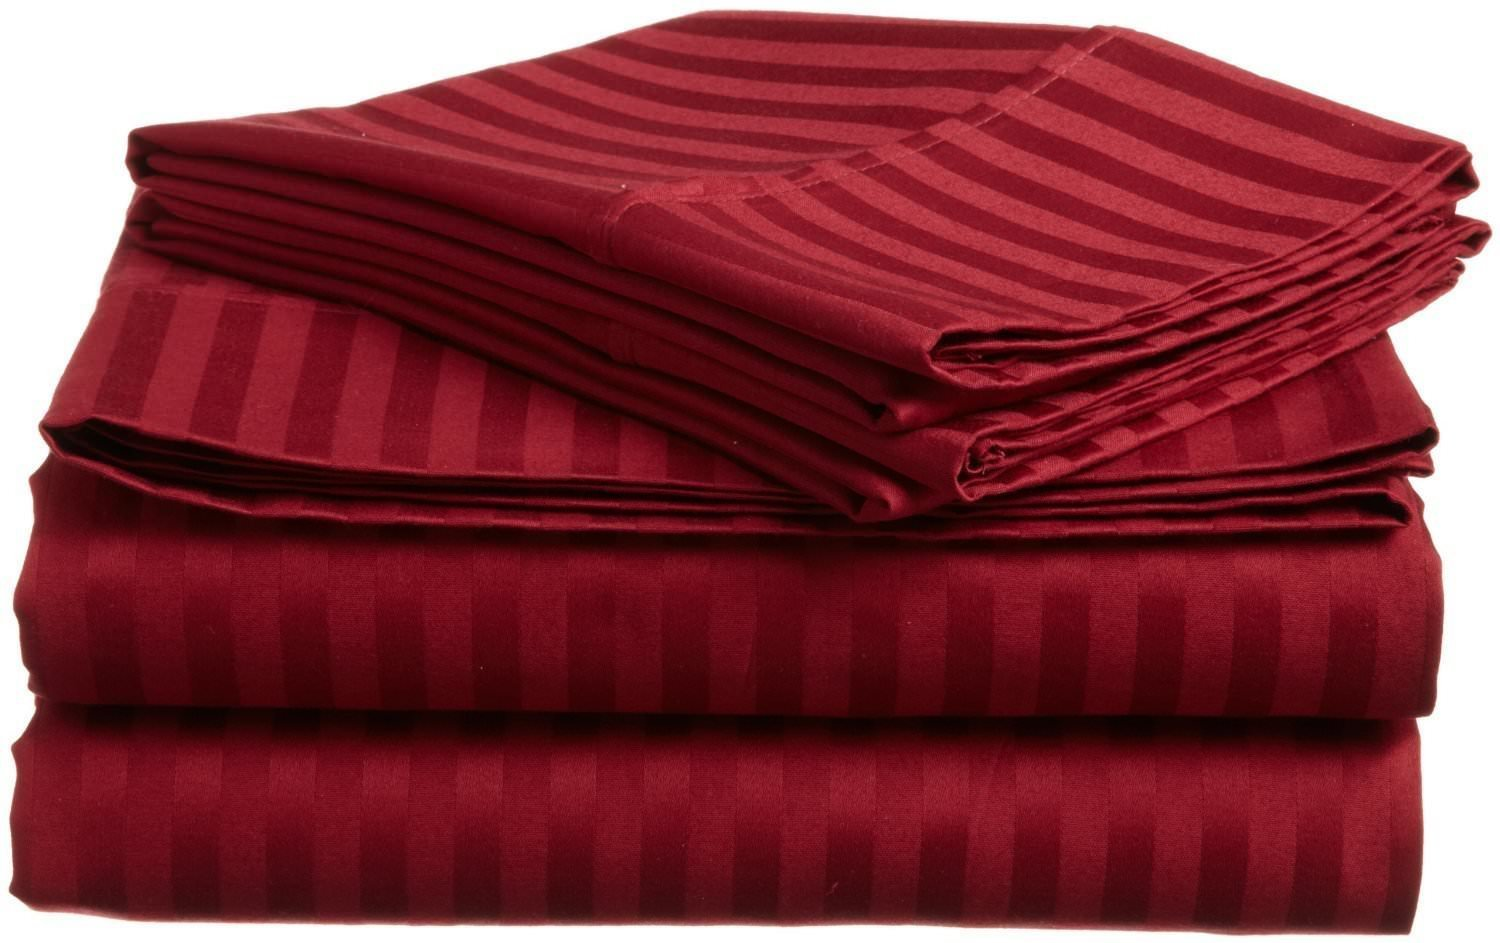 Home Decore Linen Luxurious Hotel Quality 700 Thread Count Egyptian Cotton Queen 4 Piece Sheet Set fits up to 9 Inch mattresses ( Deep Pocket ), Striped Burgundy